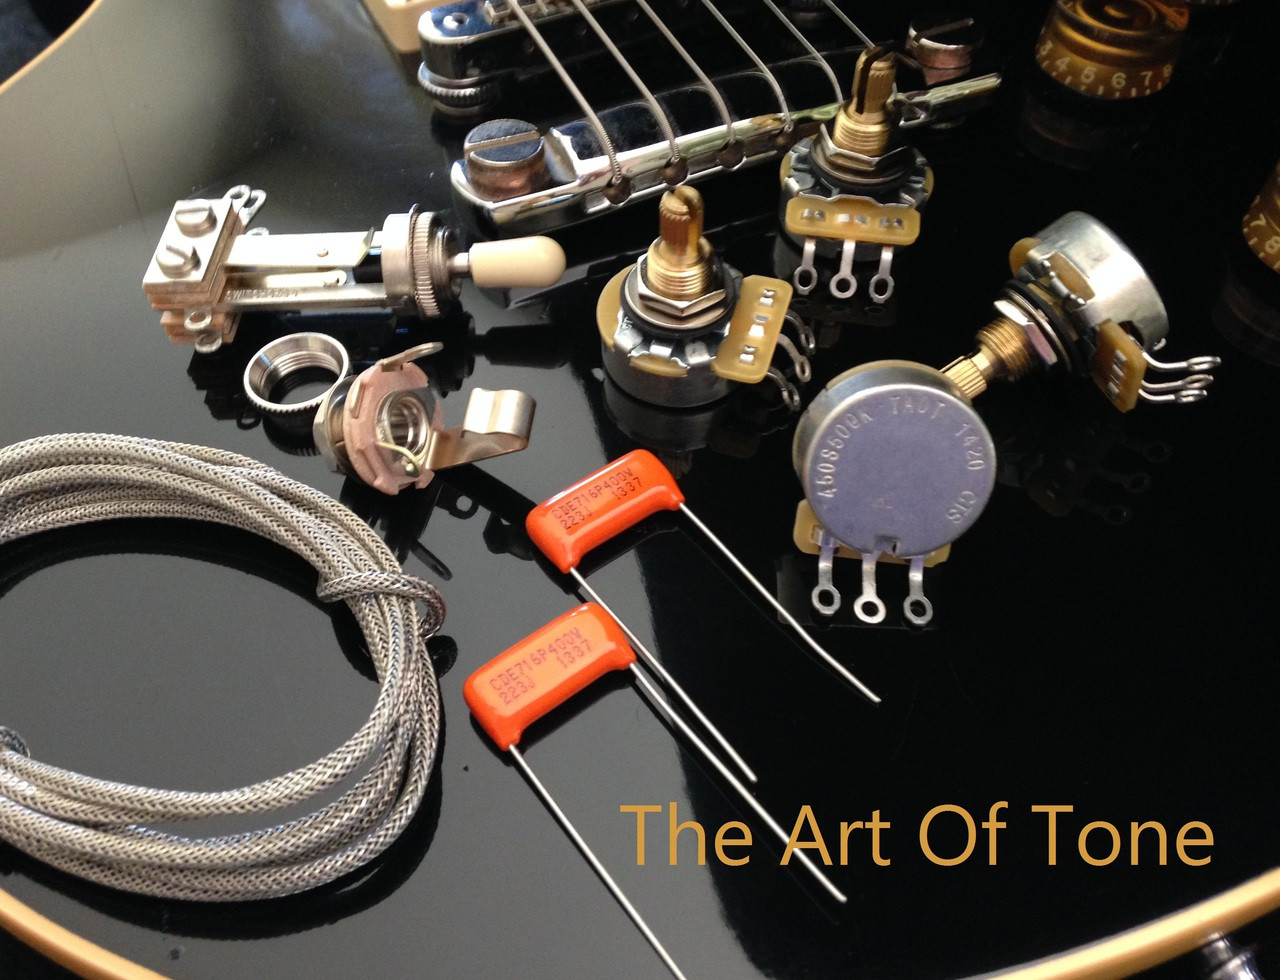 Russian Guitar Wiring Harness Spec Diagram Prs Deluxe Short Shaft Kit For Gibson Usa Les Paul Guitars Rh Theartoftone Com